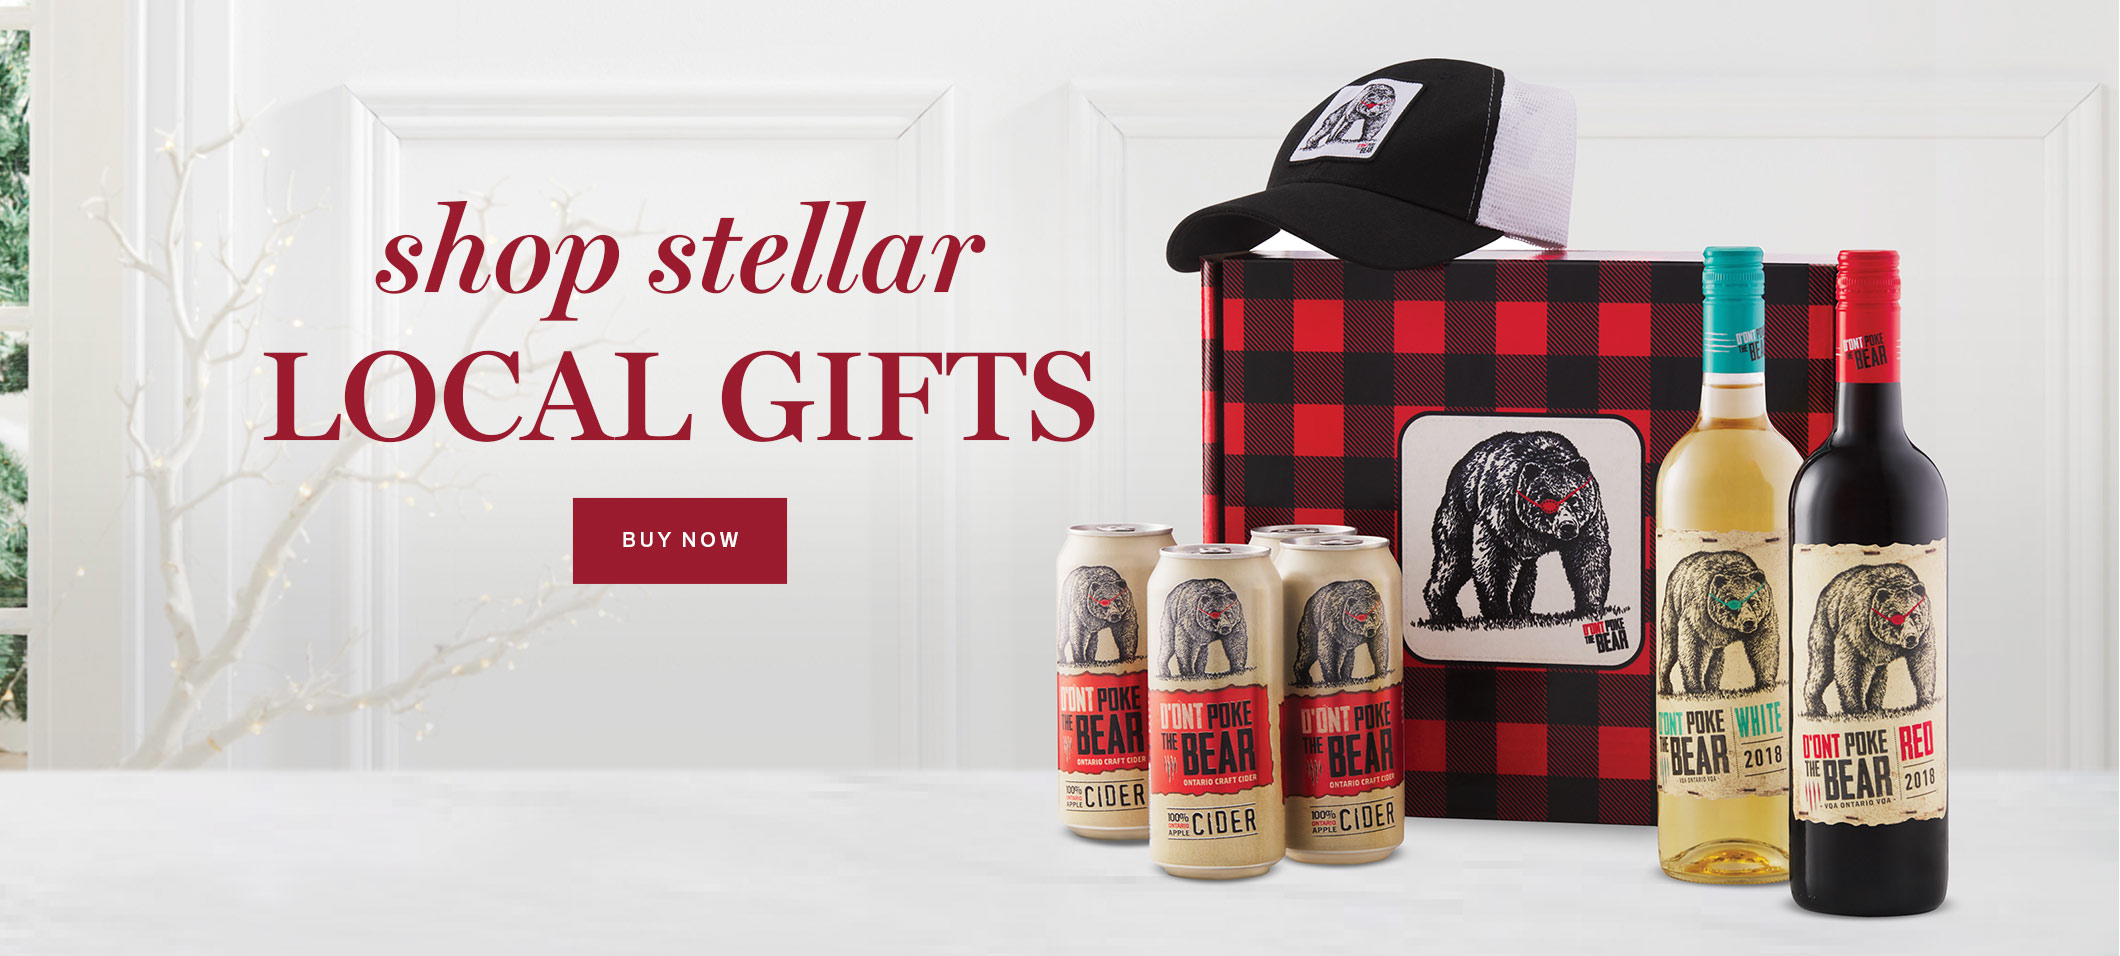 Shop stellar Local Gifts